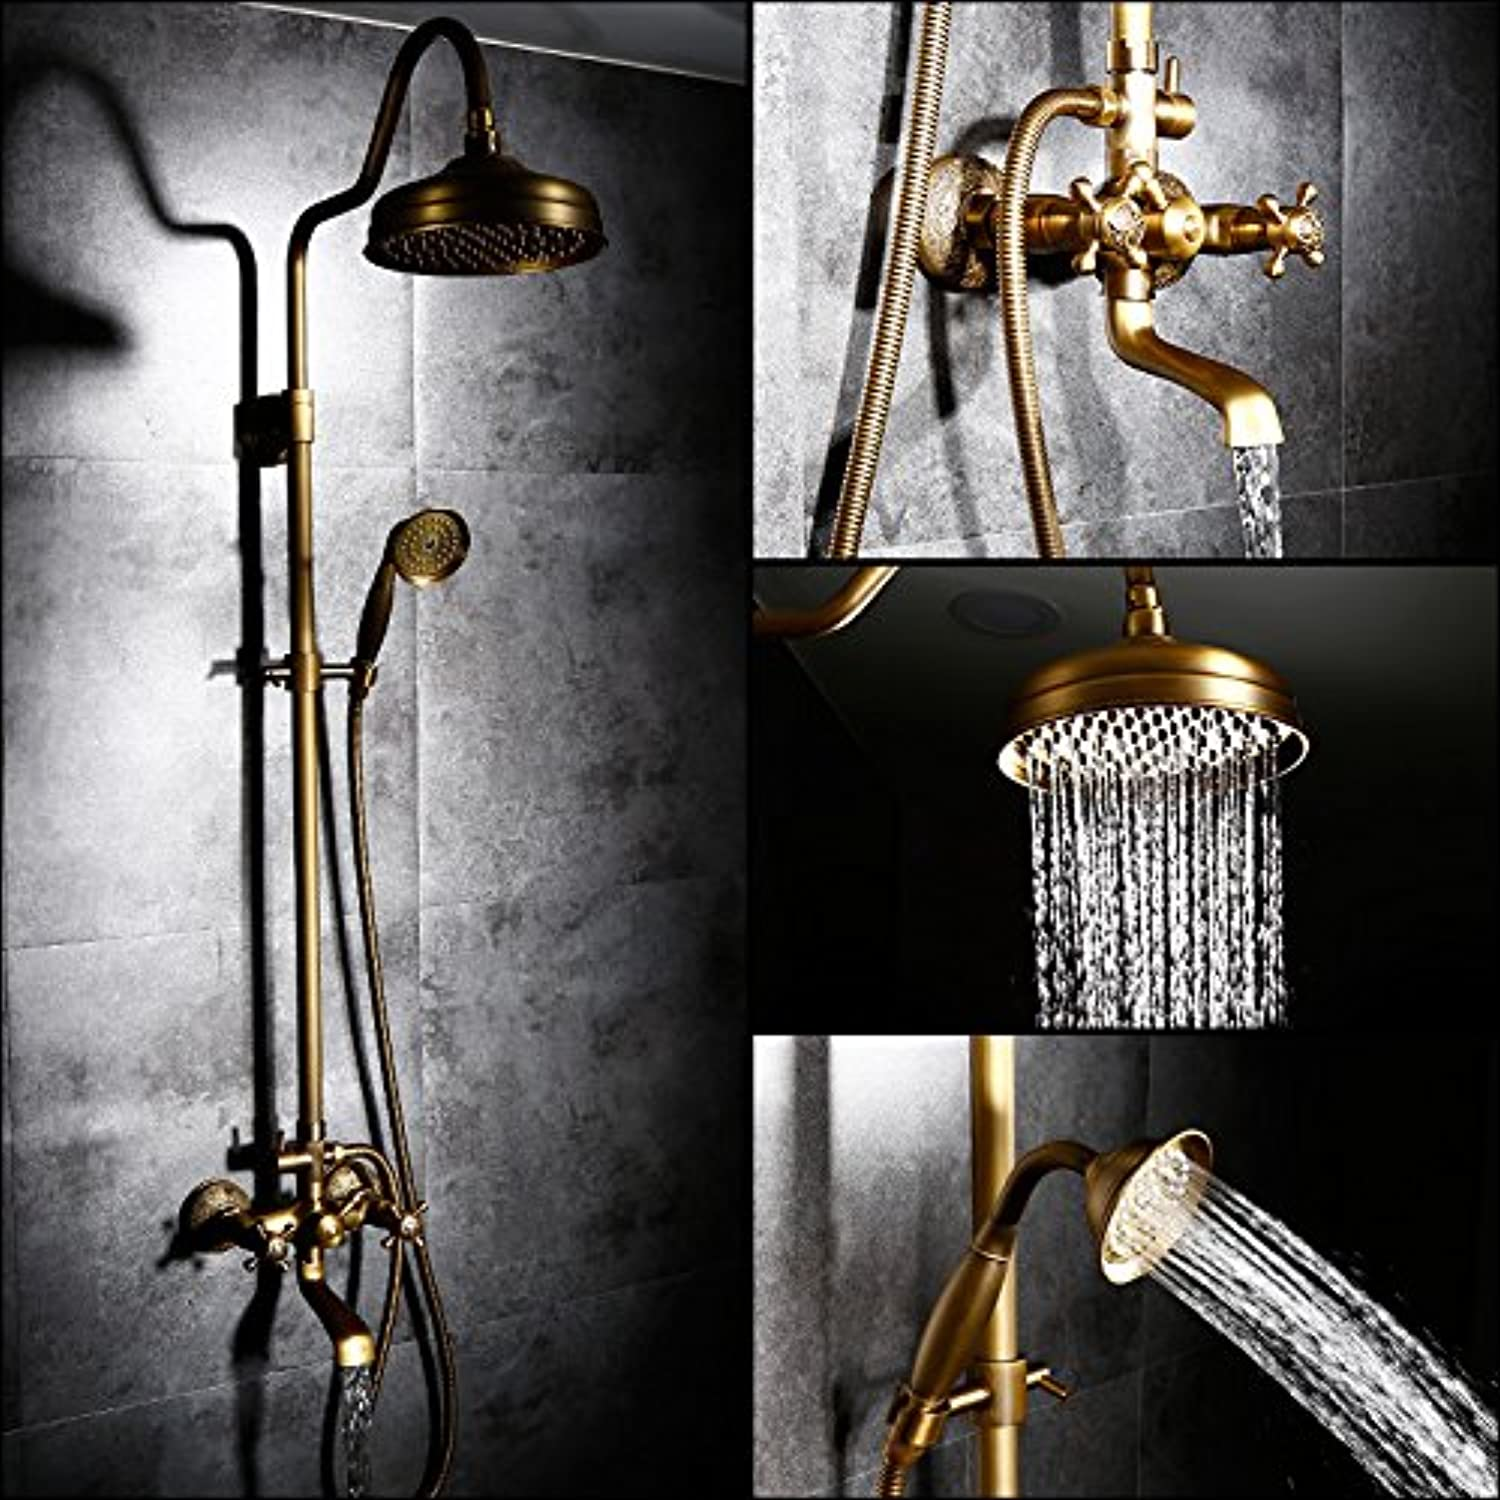 SADASD European Bathroom Shower faucet Copper Jade Shower golden Retro Antique Shower Set Shower faucet Hot and Cold Water Mixing Taps Ceramic Valve Tap With G1 2 Stainless Steel Hose